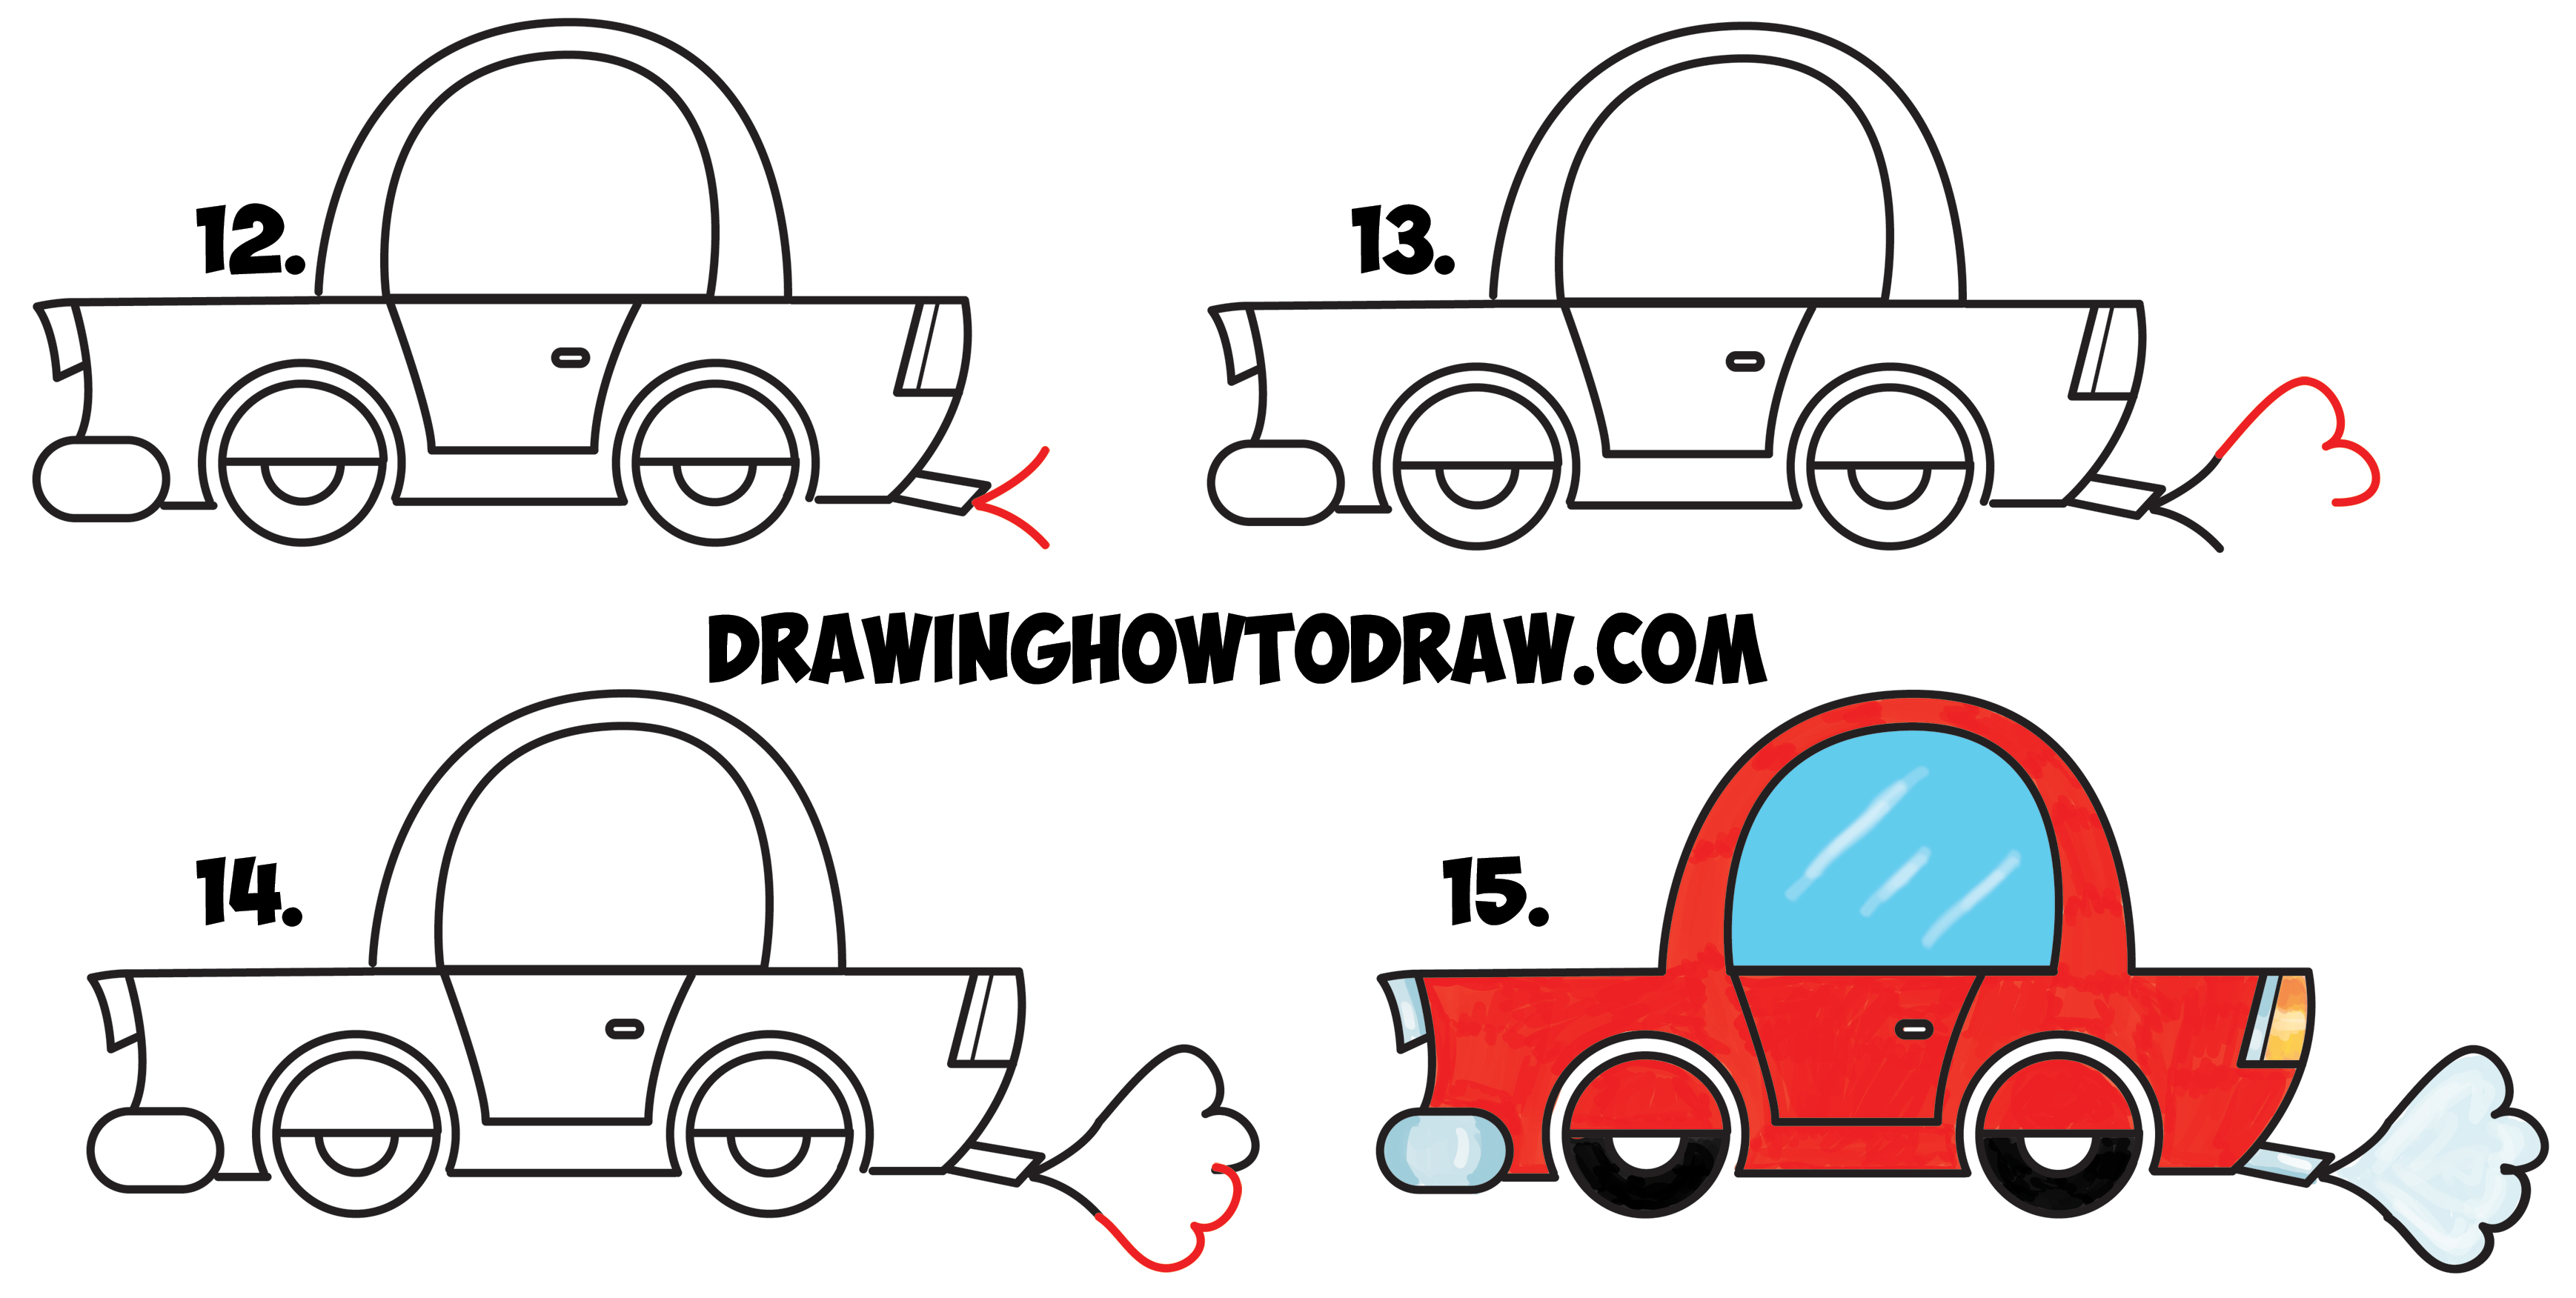 How To Draw A Cartoon Car From Lowercase Letter E Shapes Easy